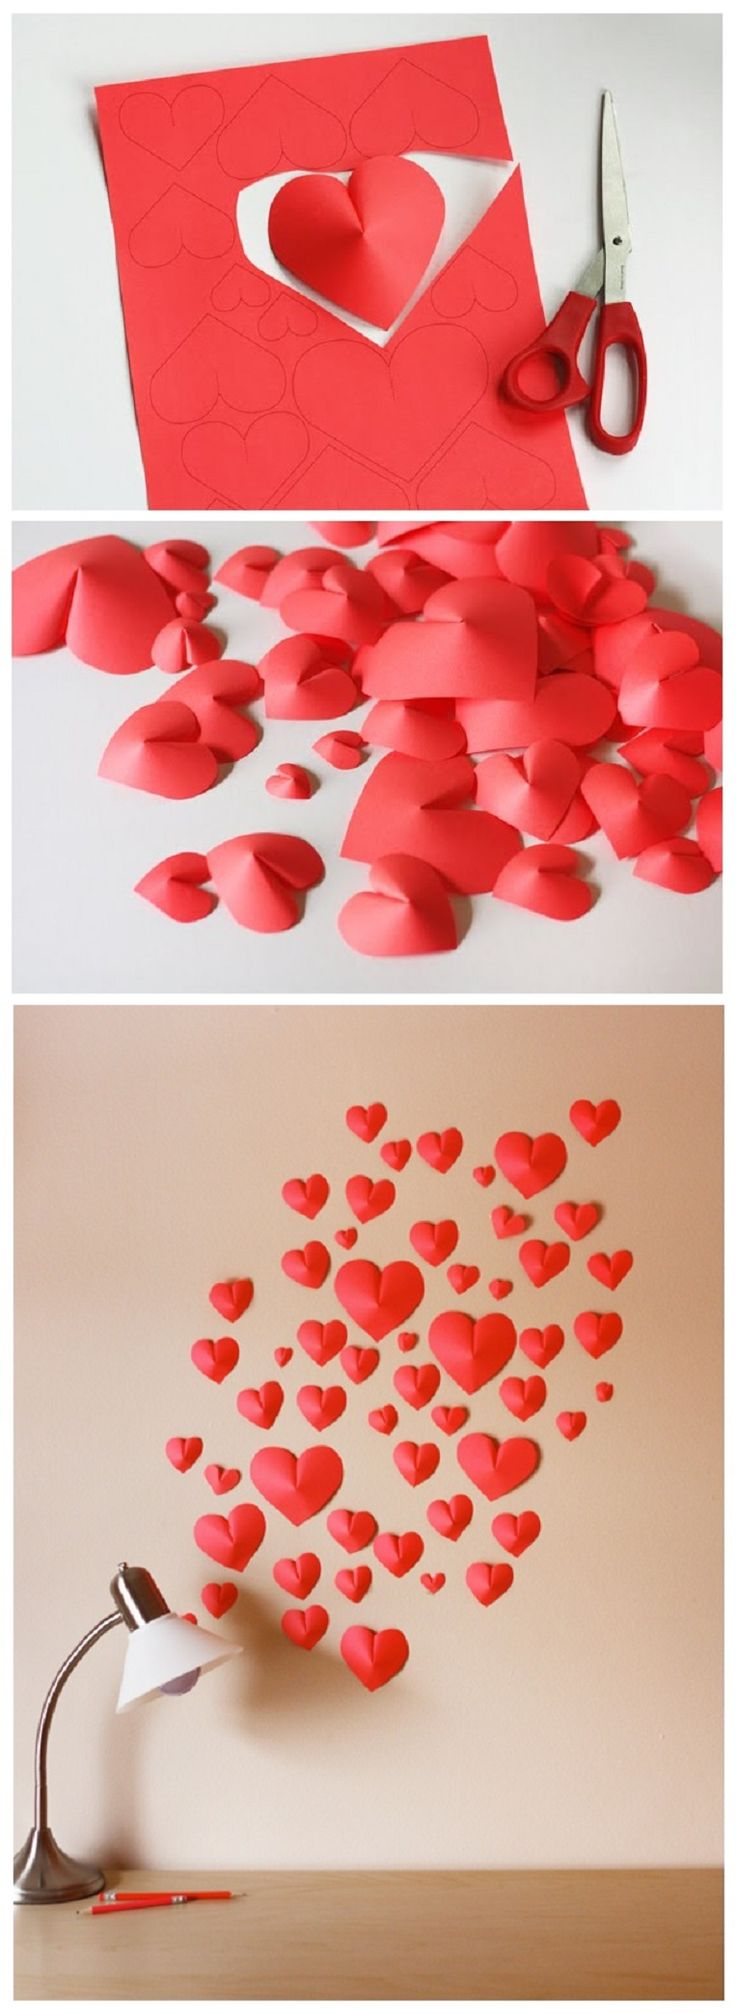 25 best ideas about valentines day decorations on for Heart decorations for the home